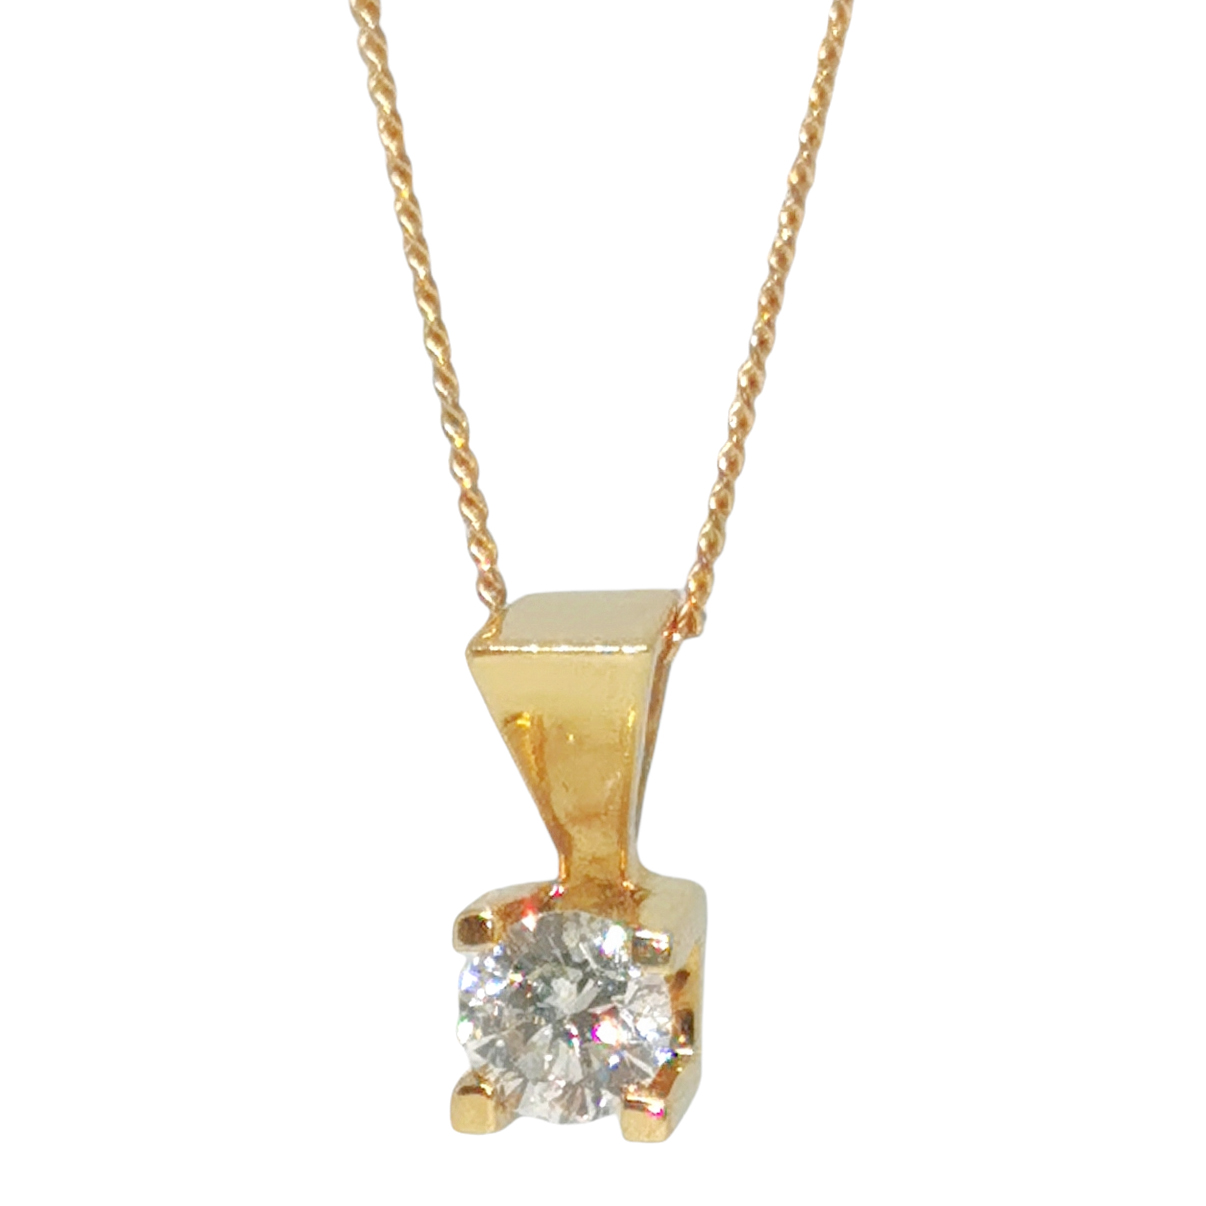 Bespoke 18ct Yellow Gold Diamond Solitaire Necklace